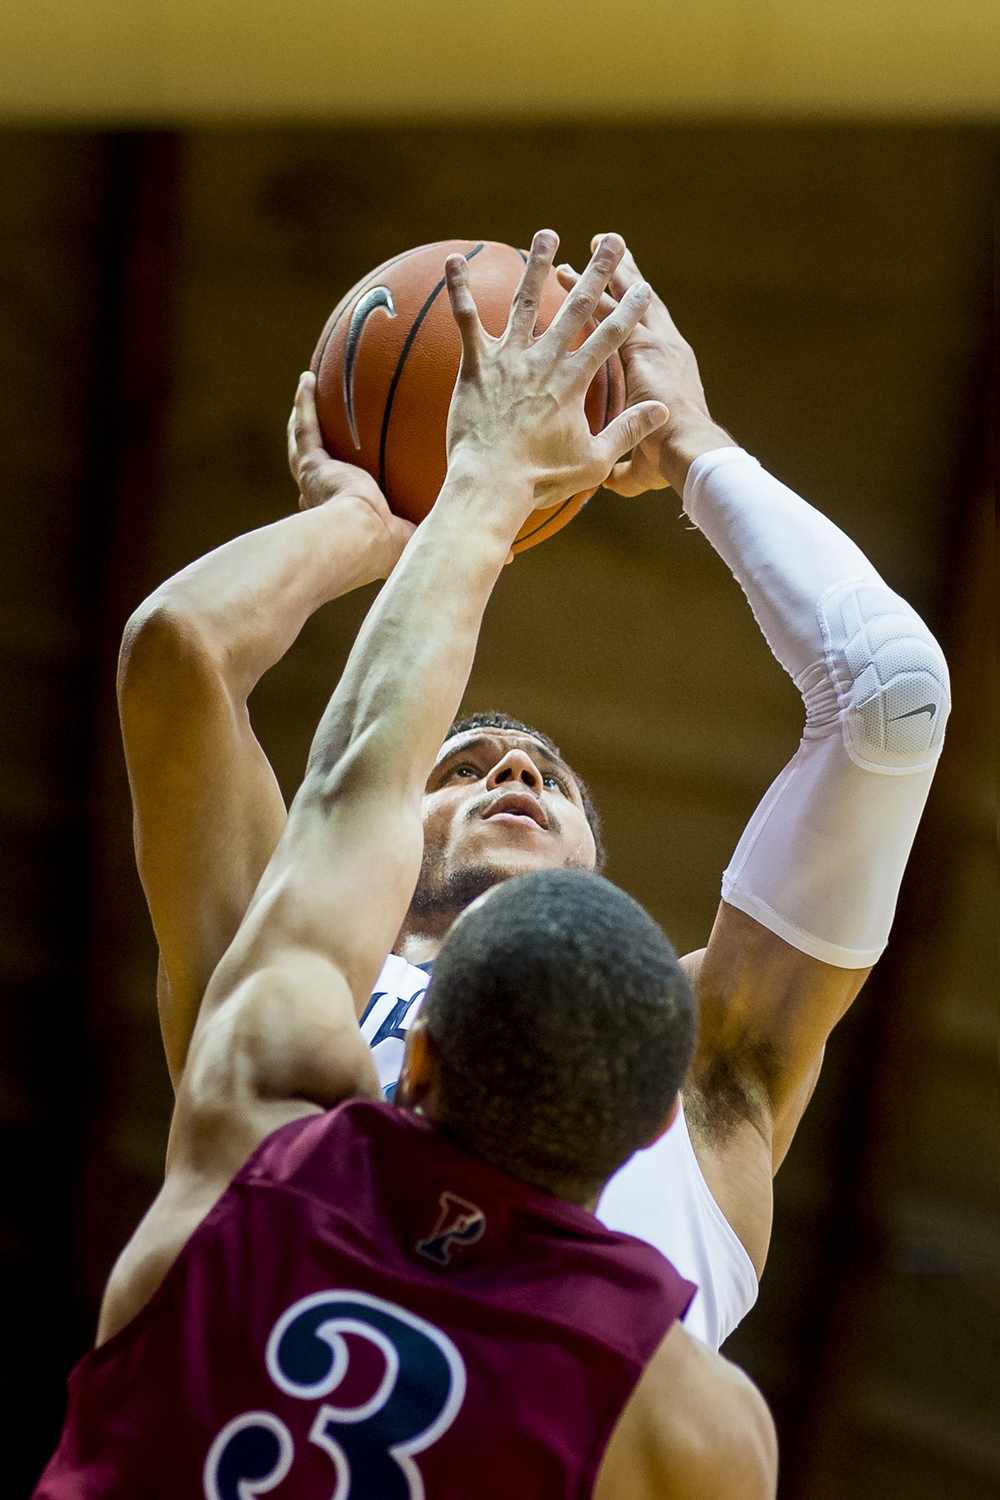 28 December 2015: Villanova Wildcats guard Josh Hart (3) eyes the basket as he aims his shot during the NCAA men's basketball game between the Penn Quakers and the Villanova Wildcats played at Pavillion in Villanova, PA. (Photo by Gavin Baker/Icon Sportswire)